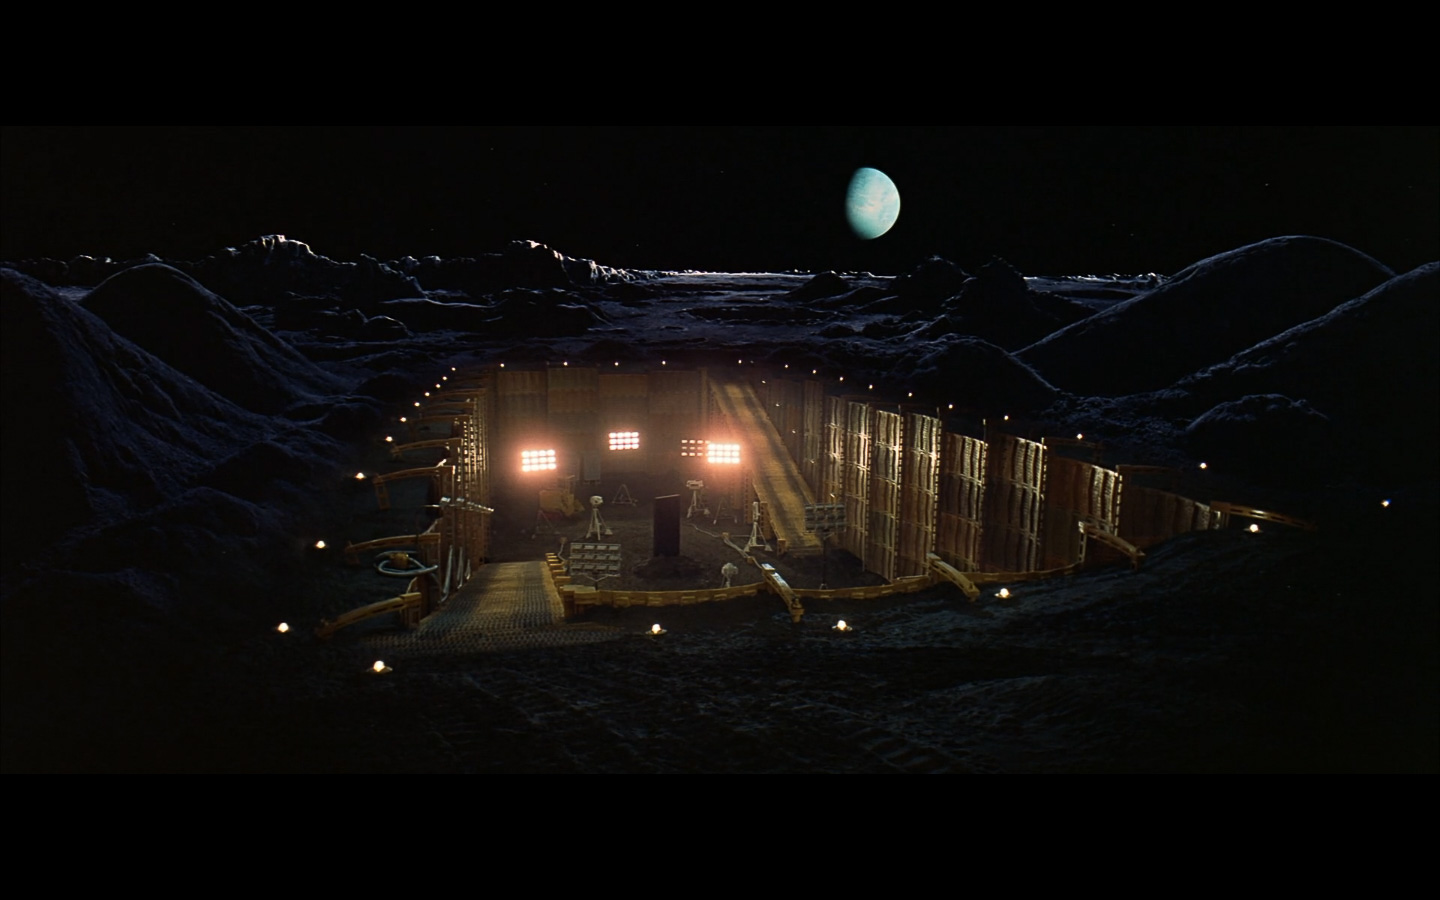 scene on the moon obelisk - space odyssey-1